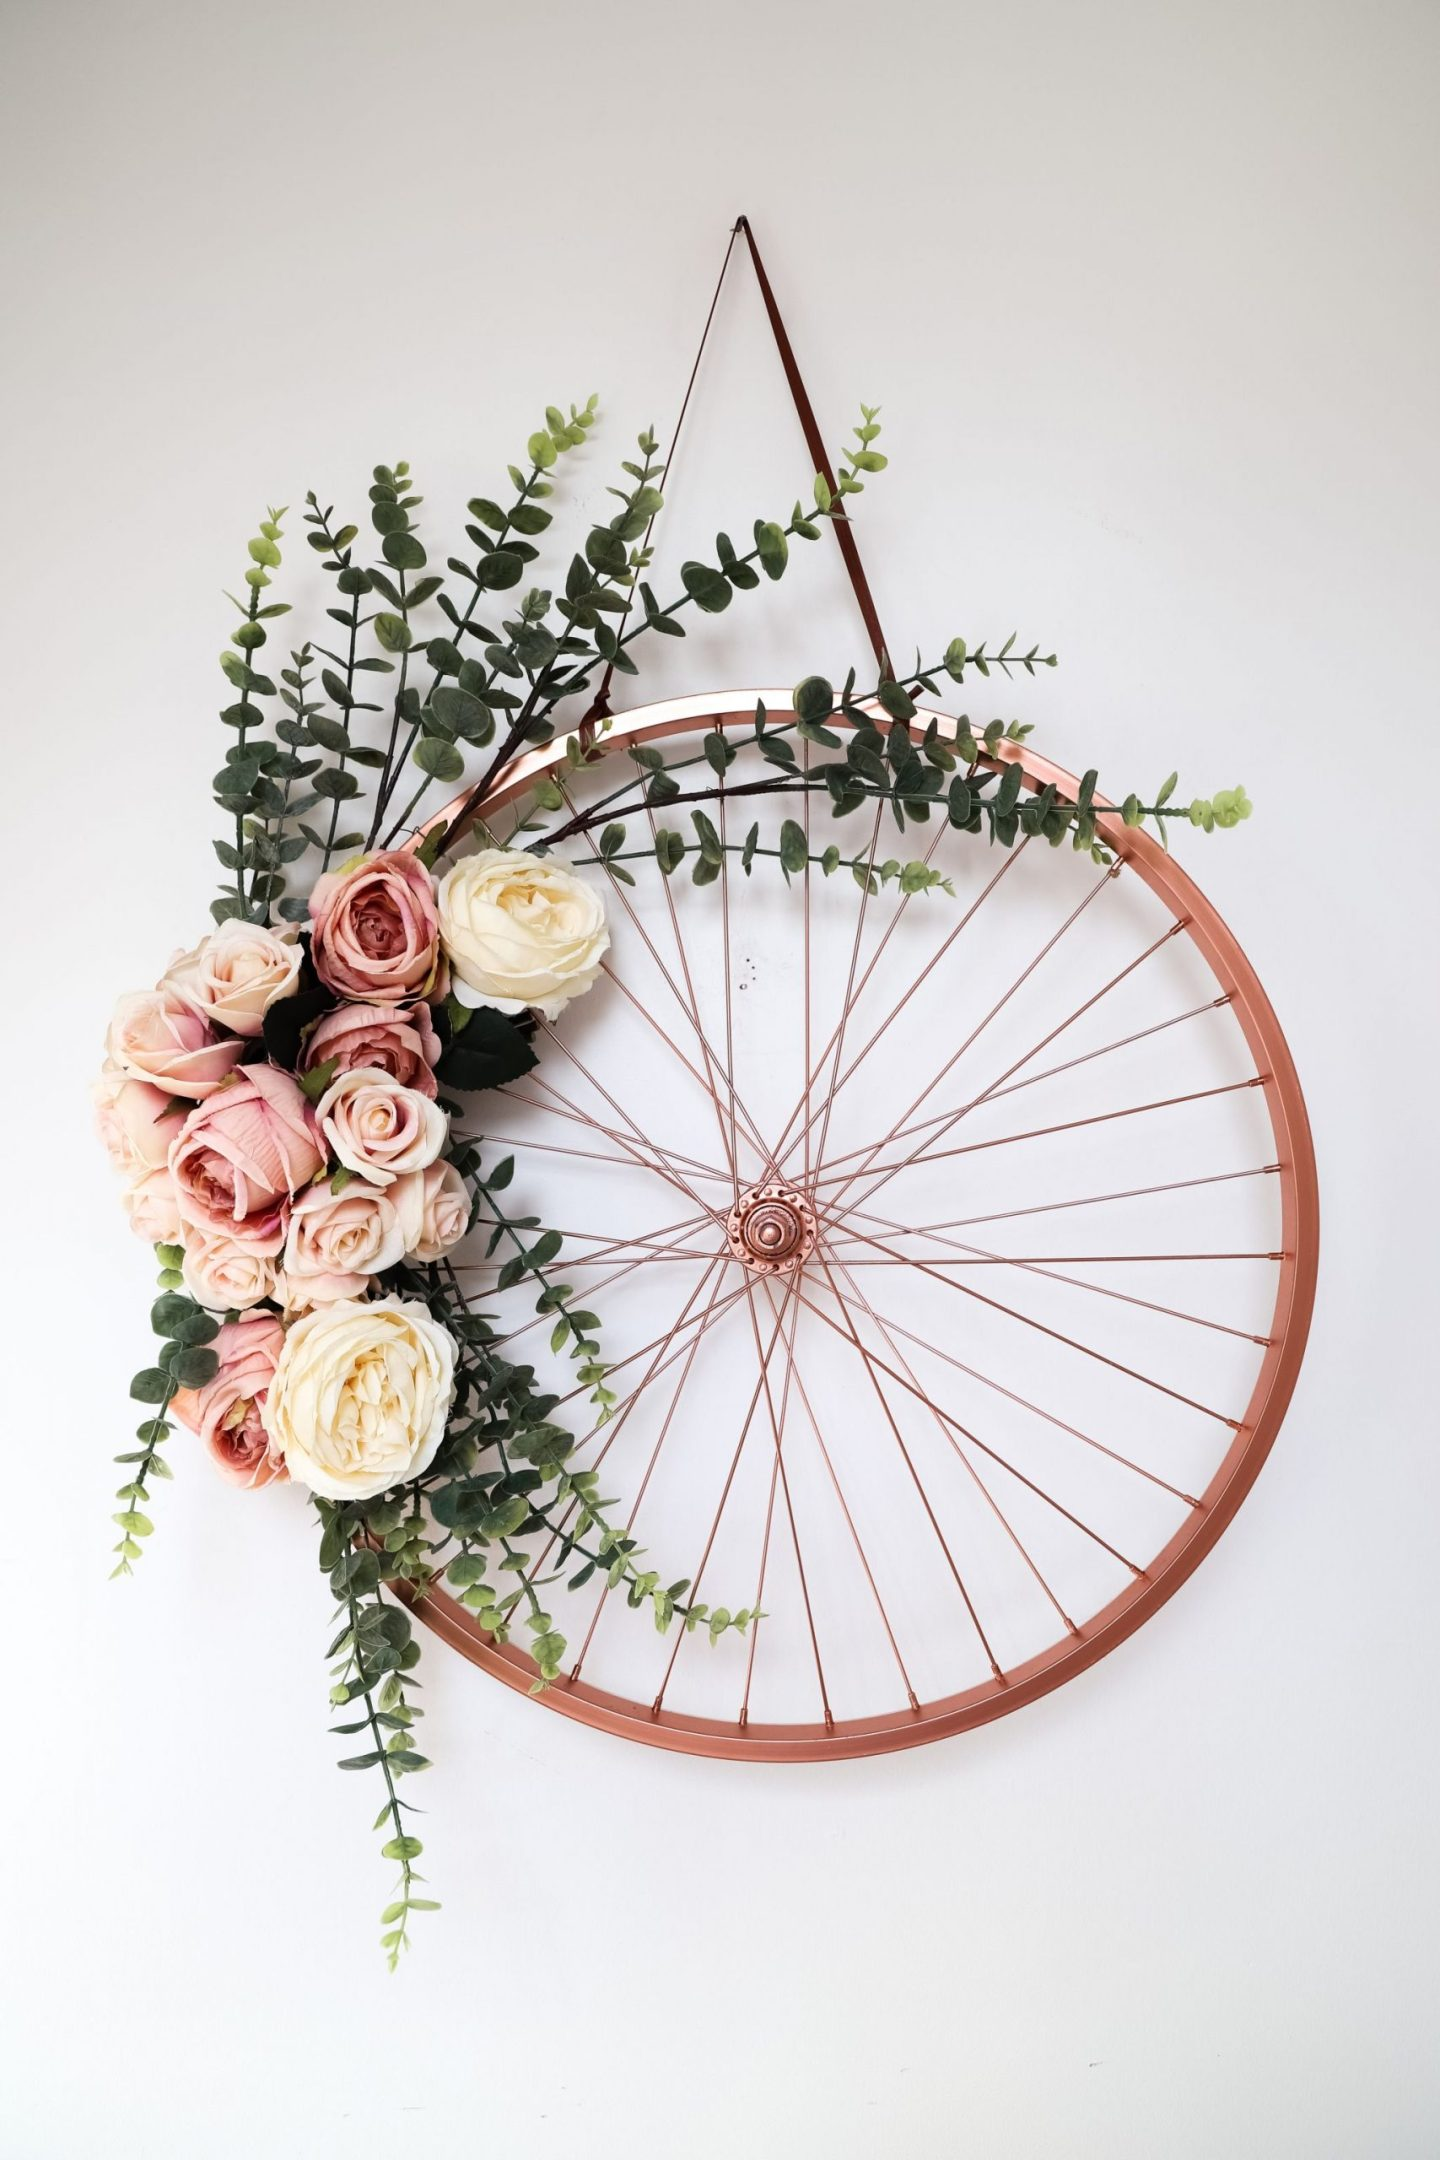 Repurpose and recycled bike frame